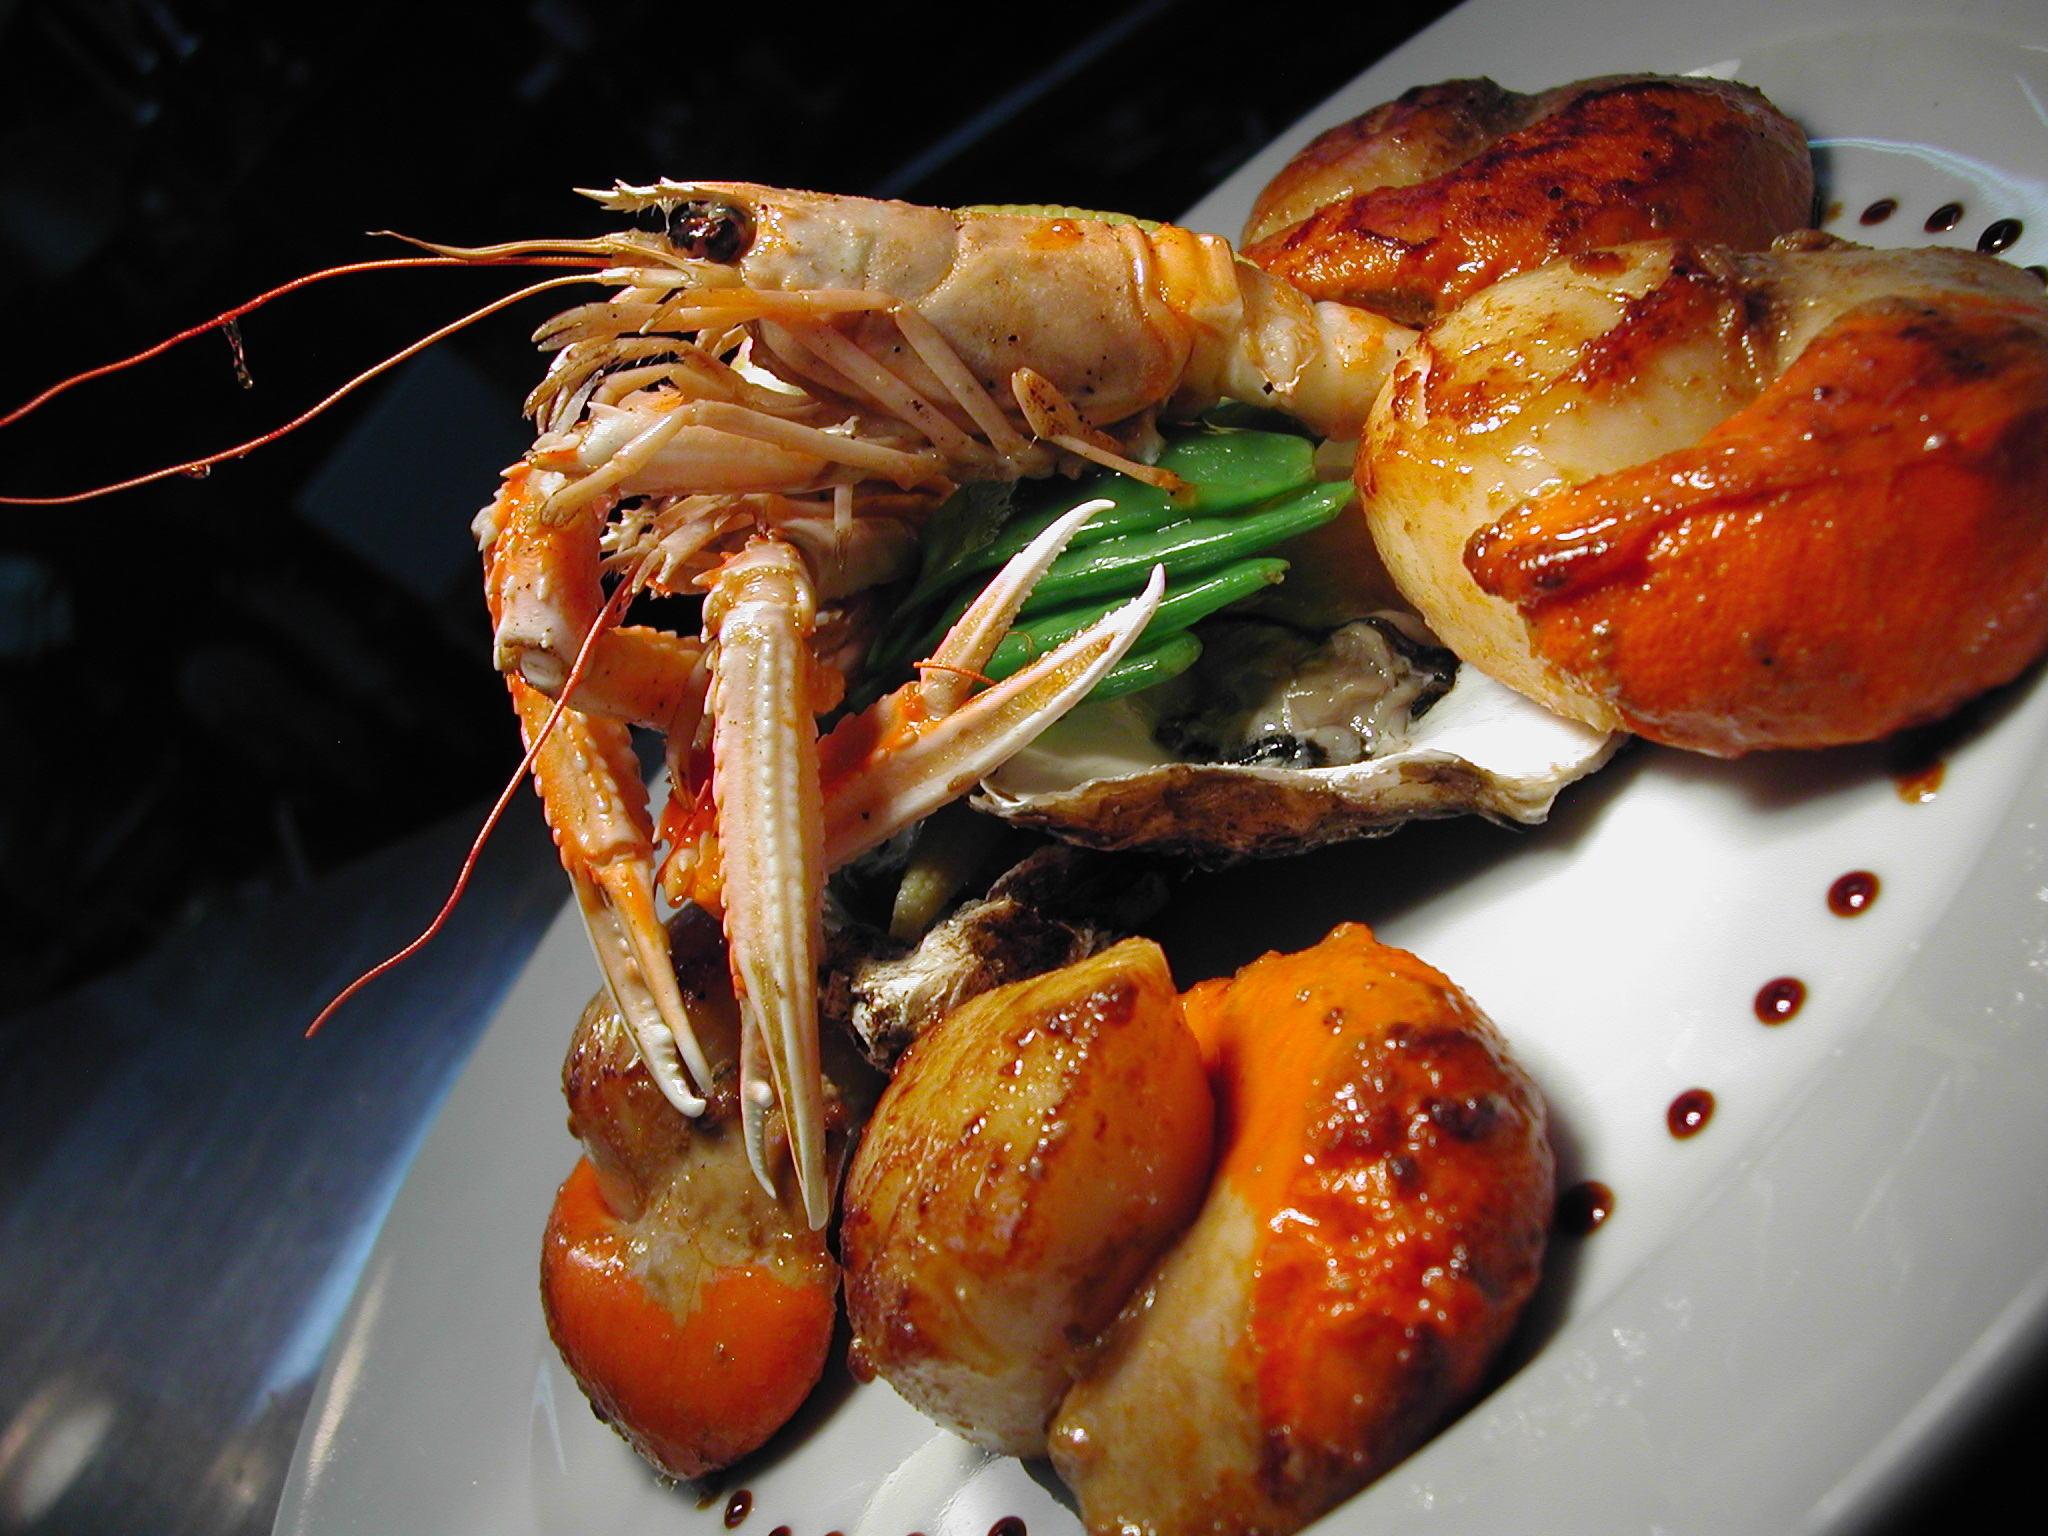 scallop-and-langoustine.jpg